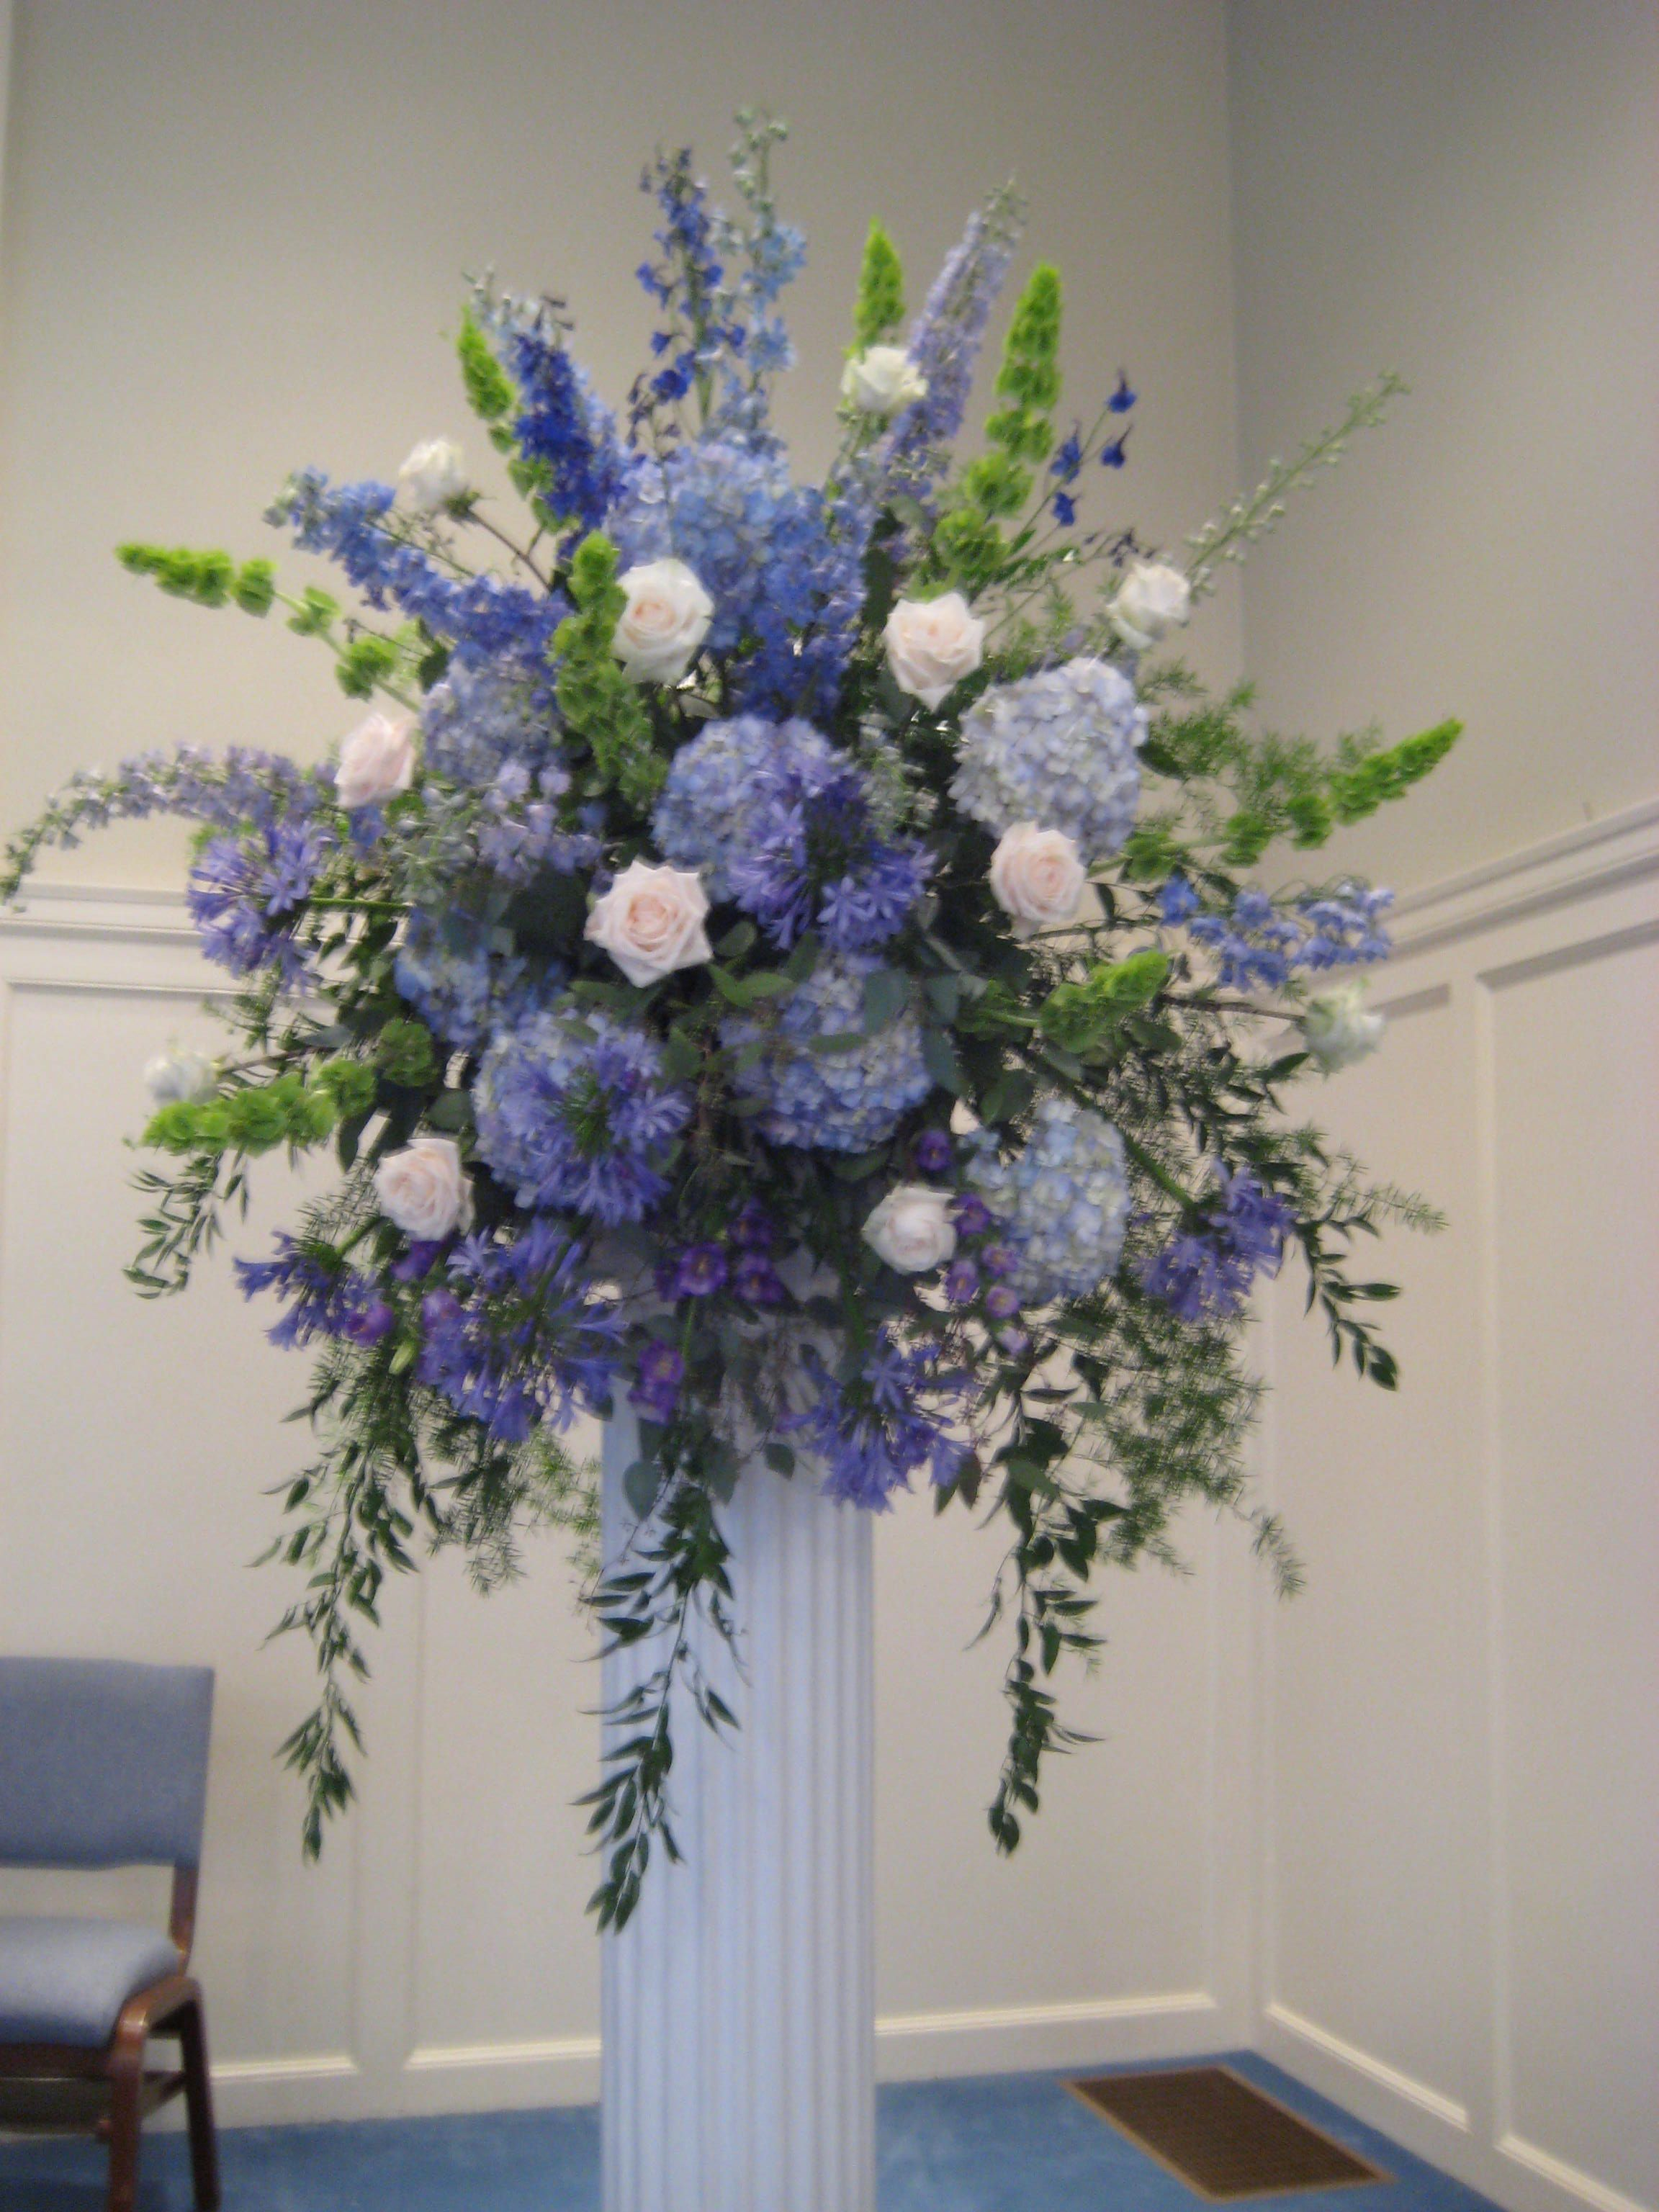 Hydrangea Delphinium Bells Of Ireland Agapanthus Blue Reception Wedding Flowers Blue Flower Arrangements Large Flower Arrangements Large Floral Arrangements